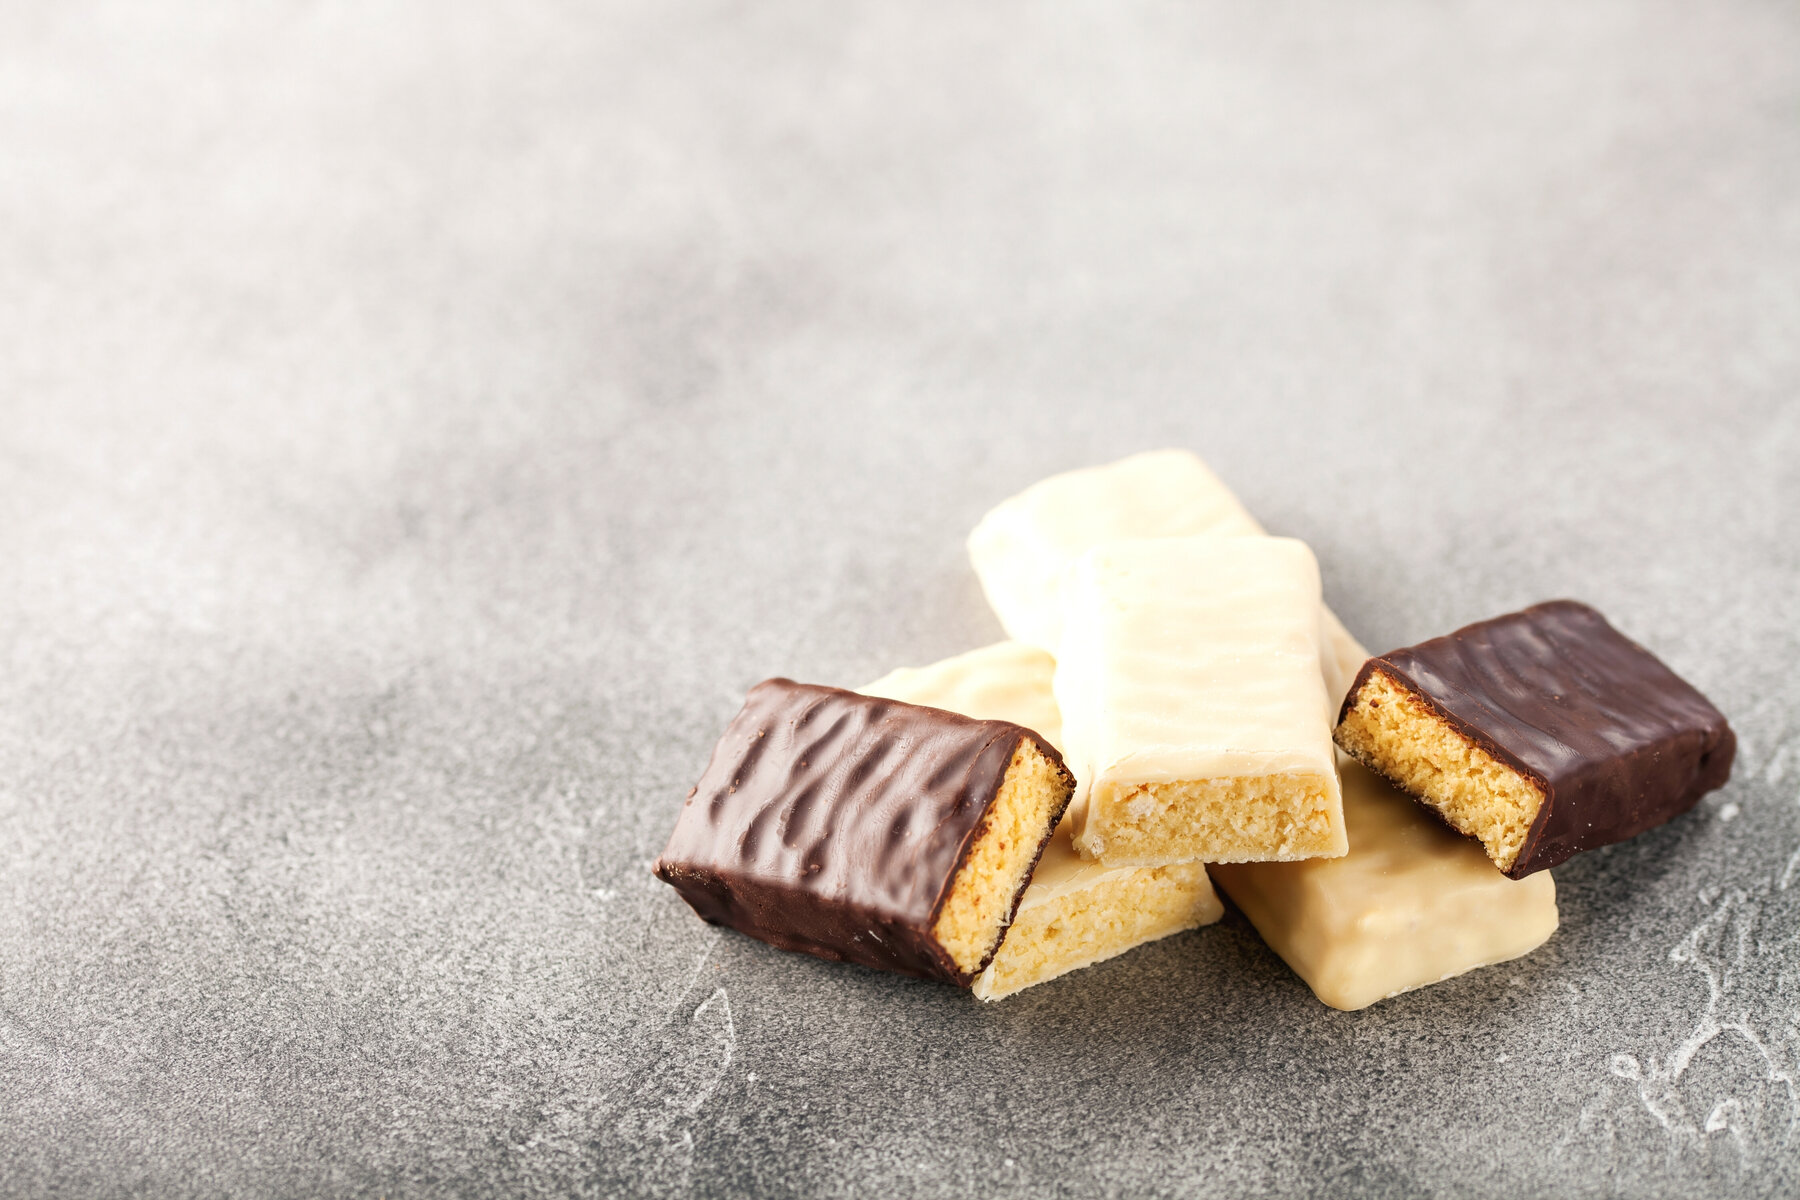 Curb Chocolate Addiction: 3 Tips for Controlling Your Sweet Tooth